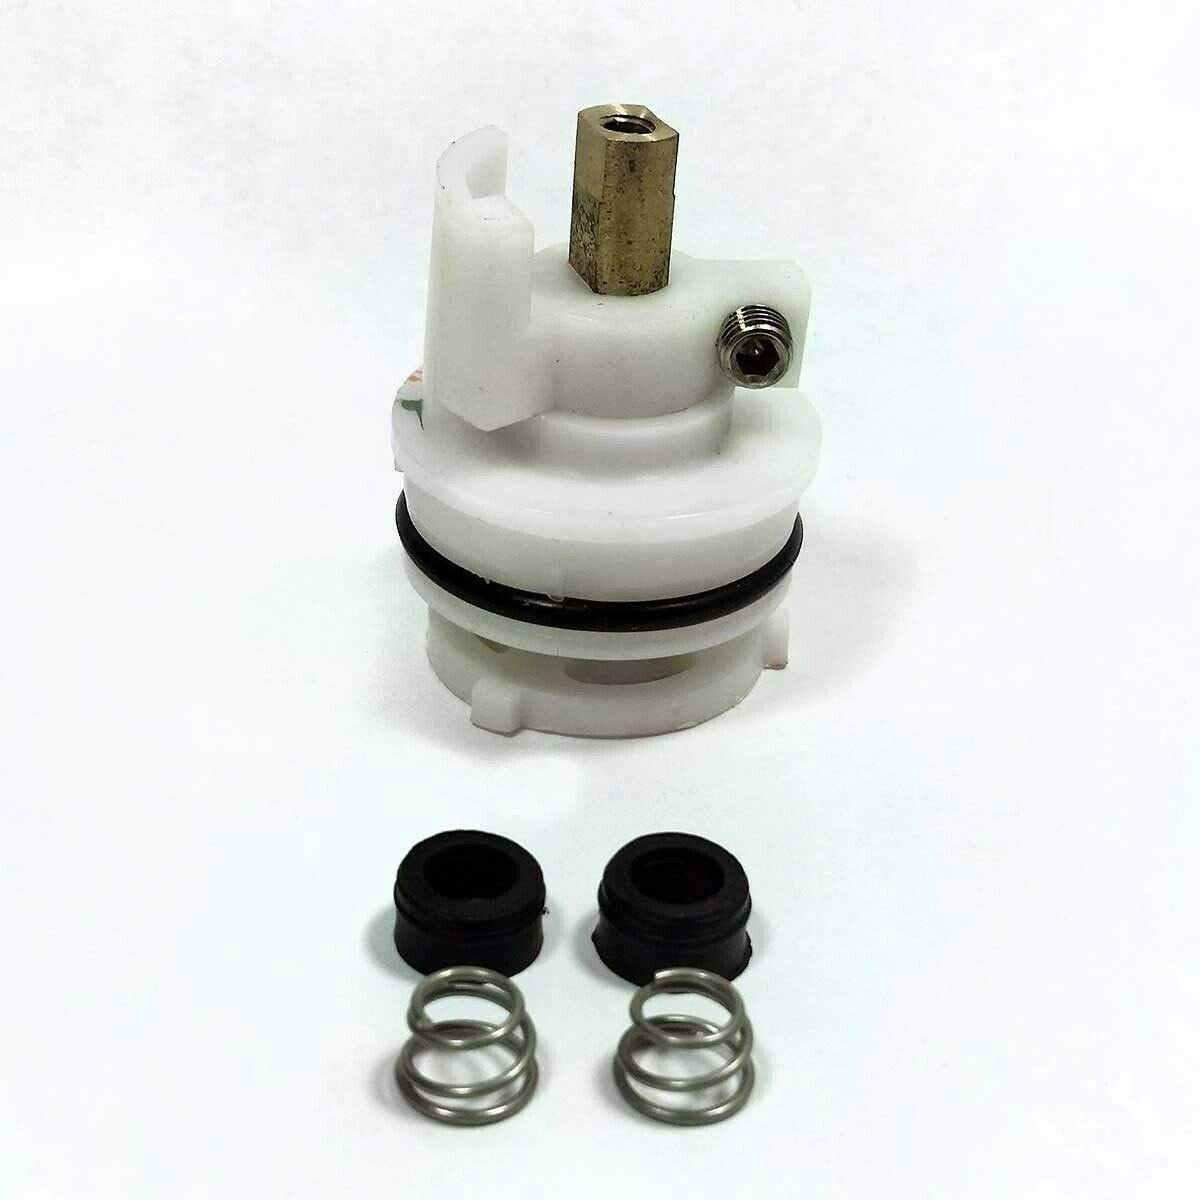 (RB) Repair Kit For Delta Faucet RP1991 Shower Cartridge with RP4993 Seats by (RB) (Image #1)